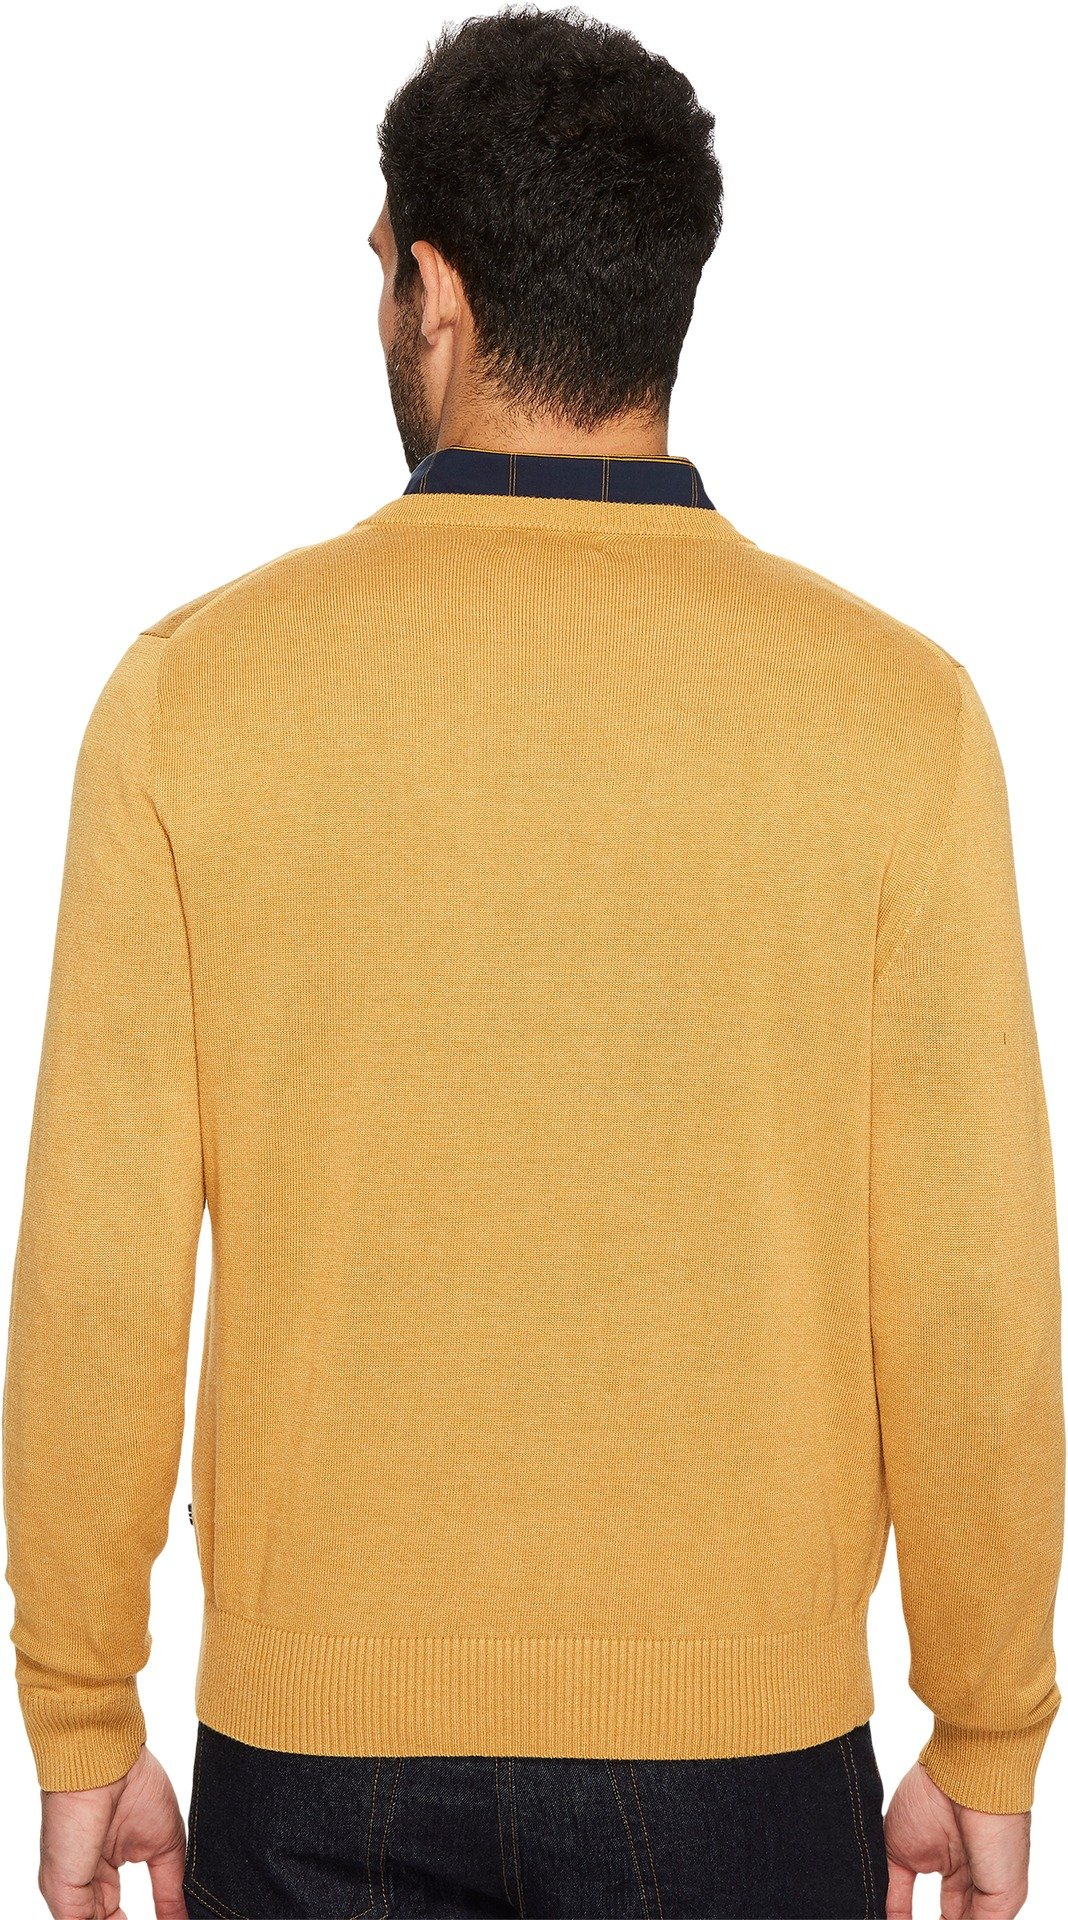 Nautica Men's Standard Long Sleeve Solid Classic V-Neck Sweater, Caramel Heather, Small